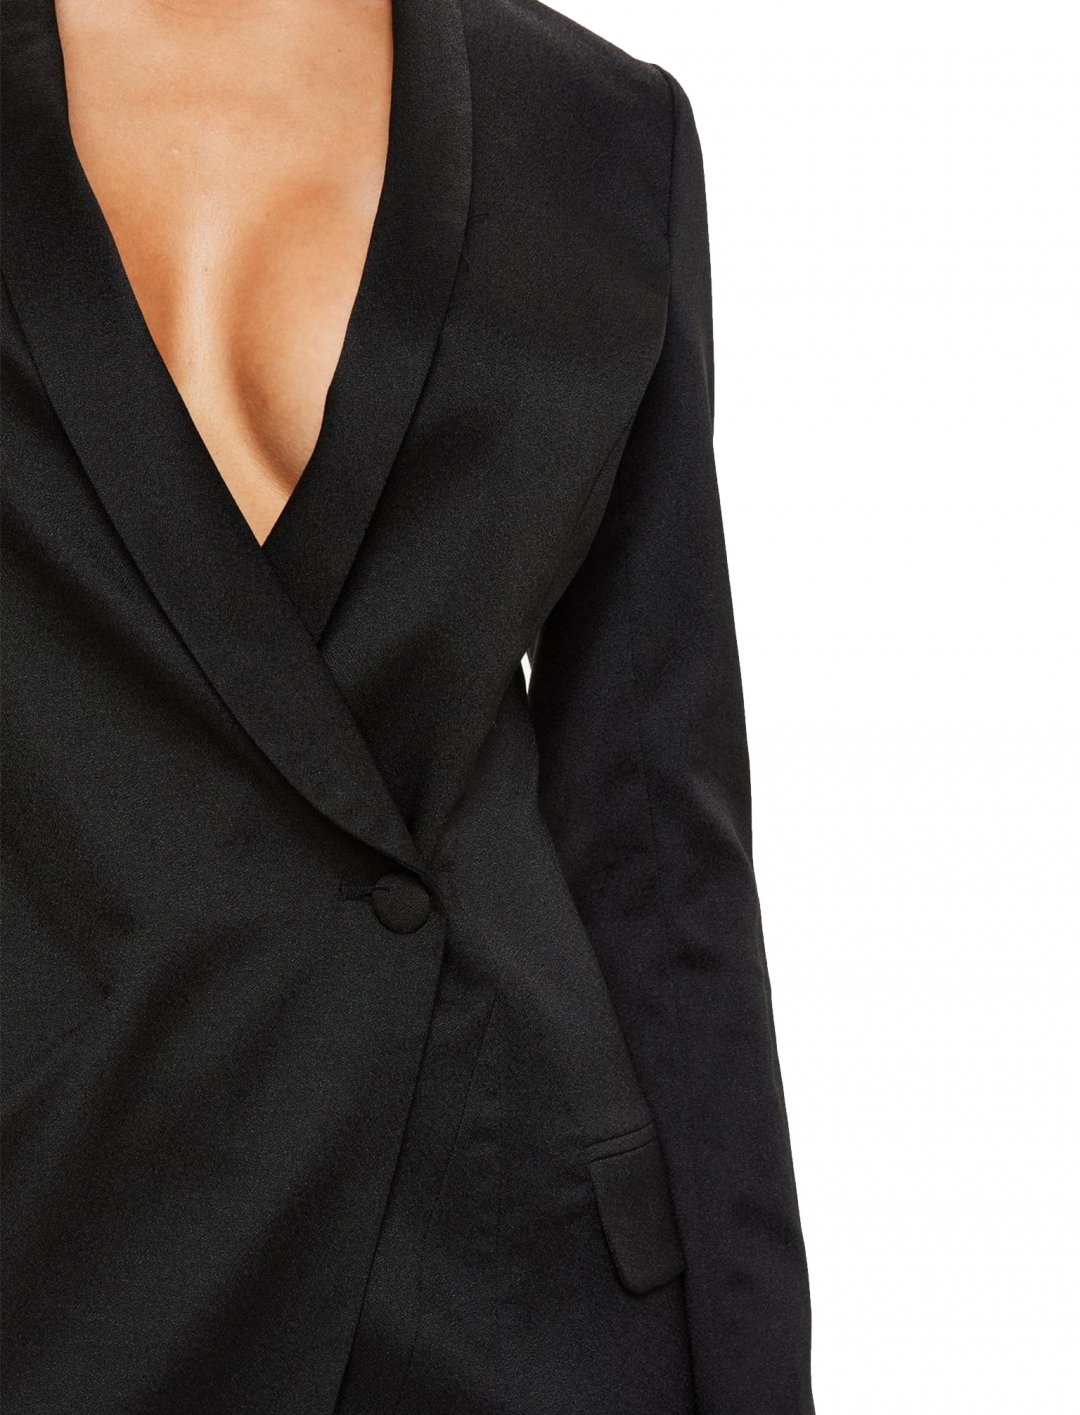 """Missguided Blazer Dress {""""id"""":5,""""product_section_id"""":1,""""name"""":""""Clothing"""",""""order"""":5} Missguided"""